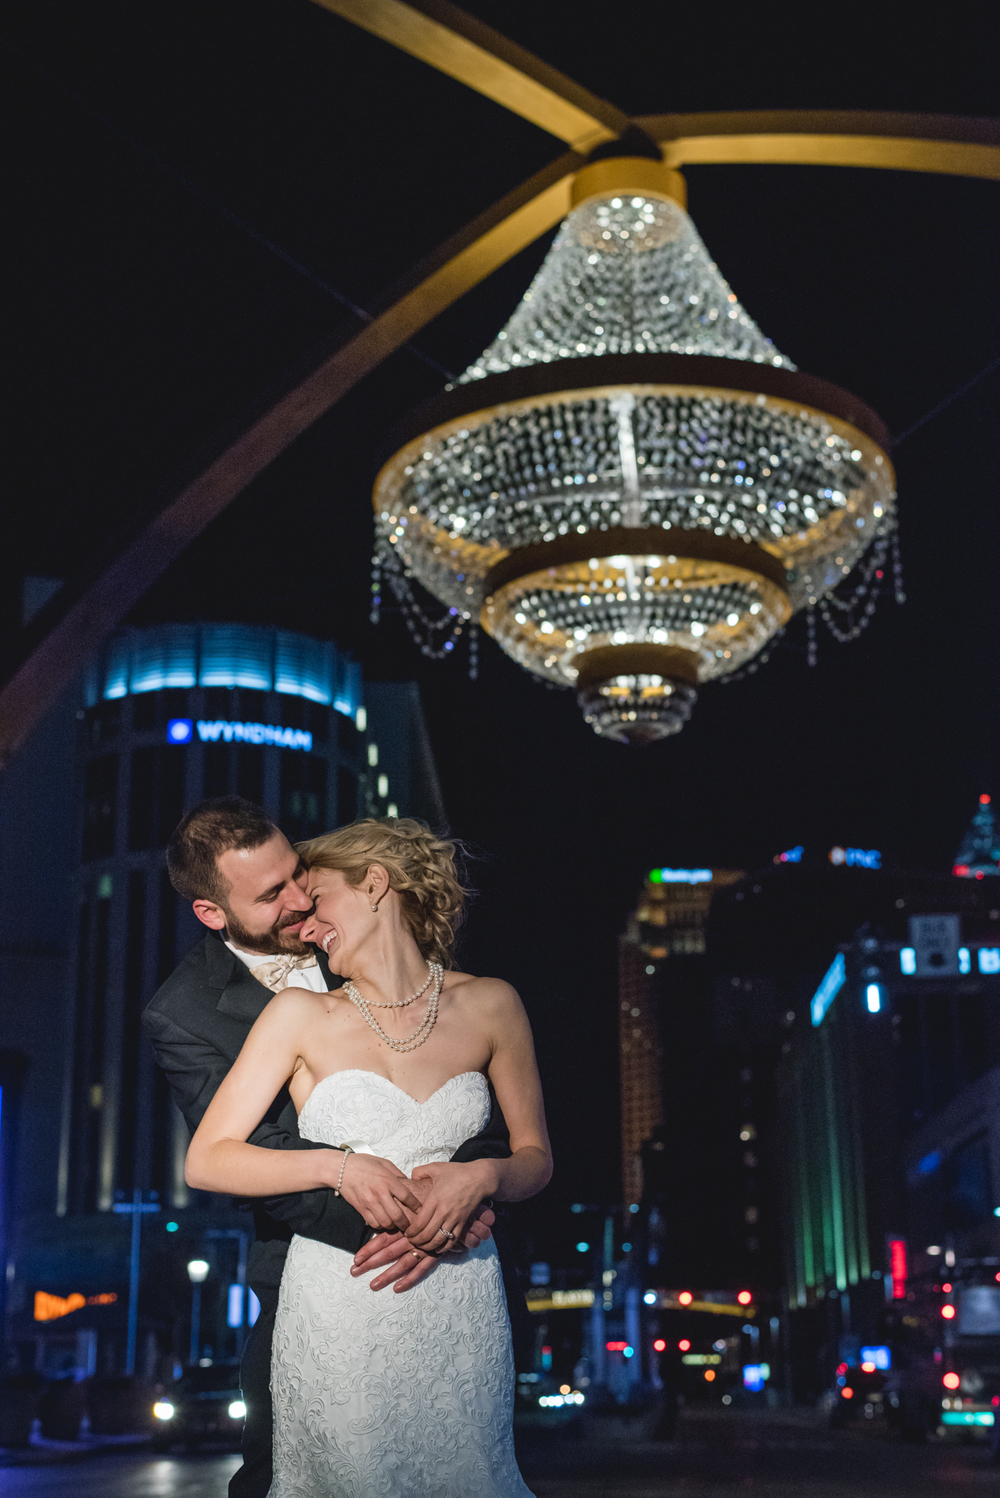 Wedding photography at playhouse square in Cleveland Ohio